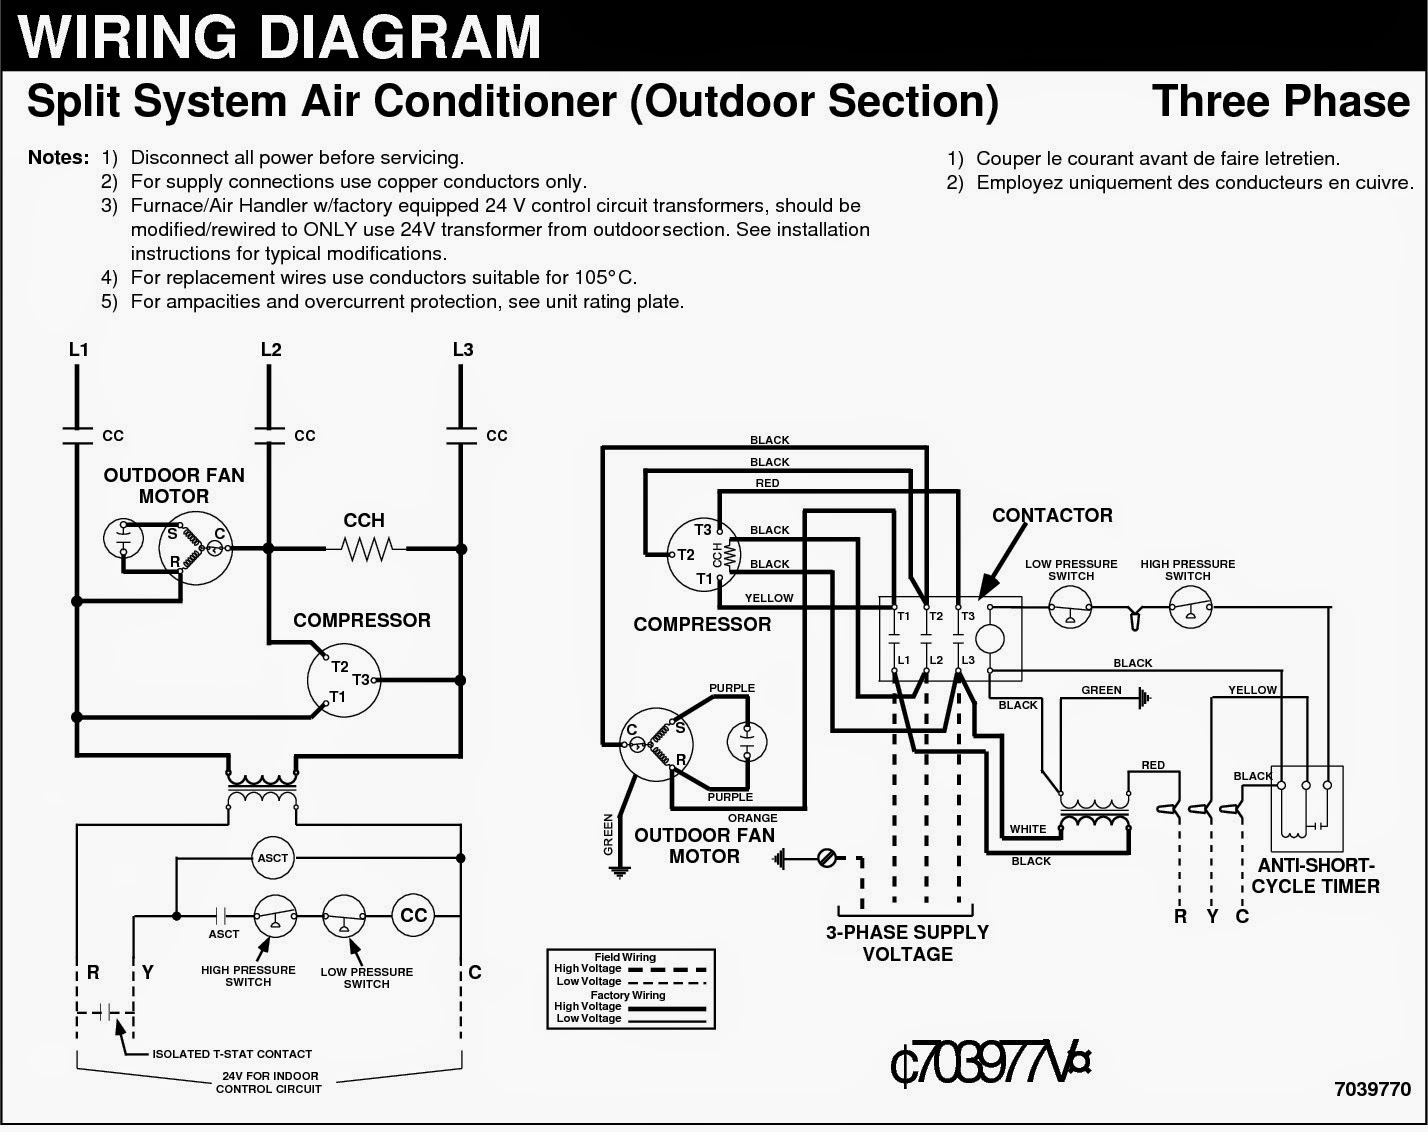 Home A C Condenser Wiring Diagram Good Guide Of Also Ac Fan Motor Moreover Century Carrier Hvac Data Rh 3 11 5 Reisen Fuer Meister De Schematic On Compressor